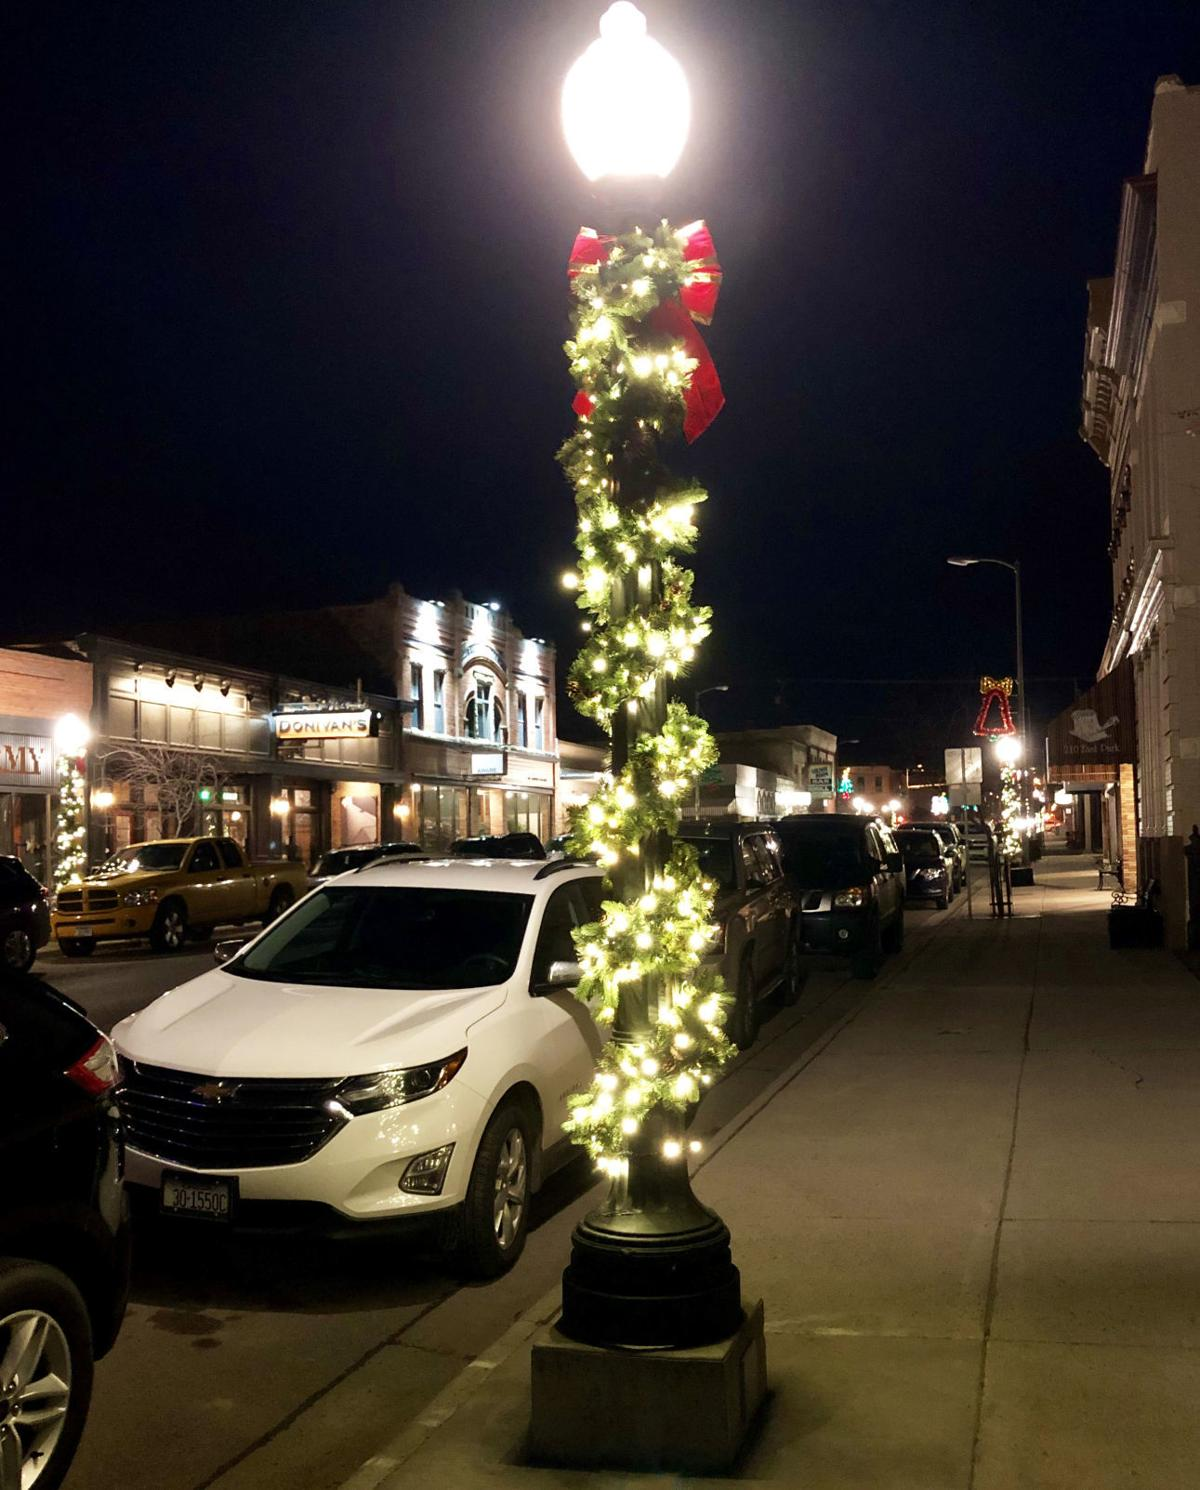 Decorated lamp post